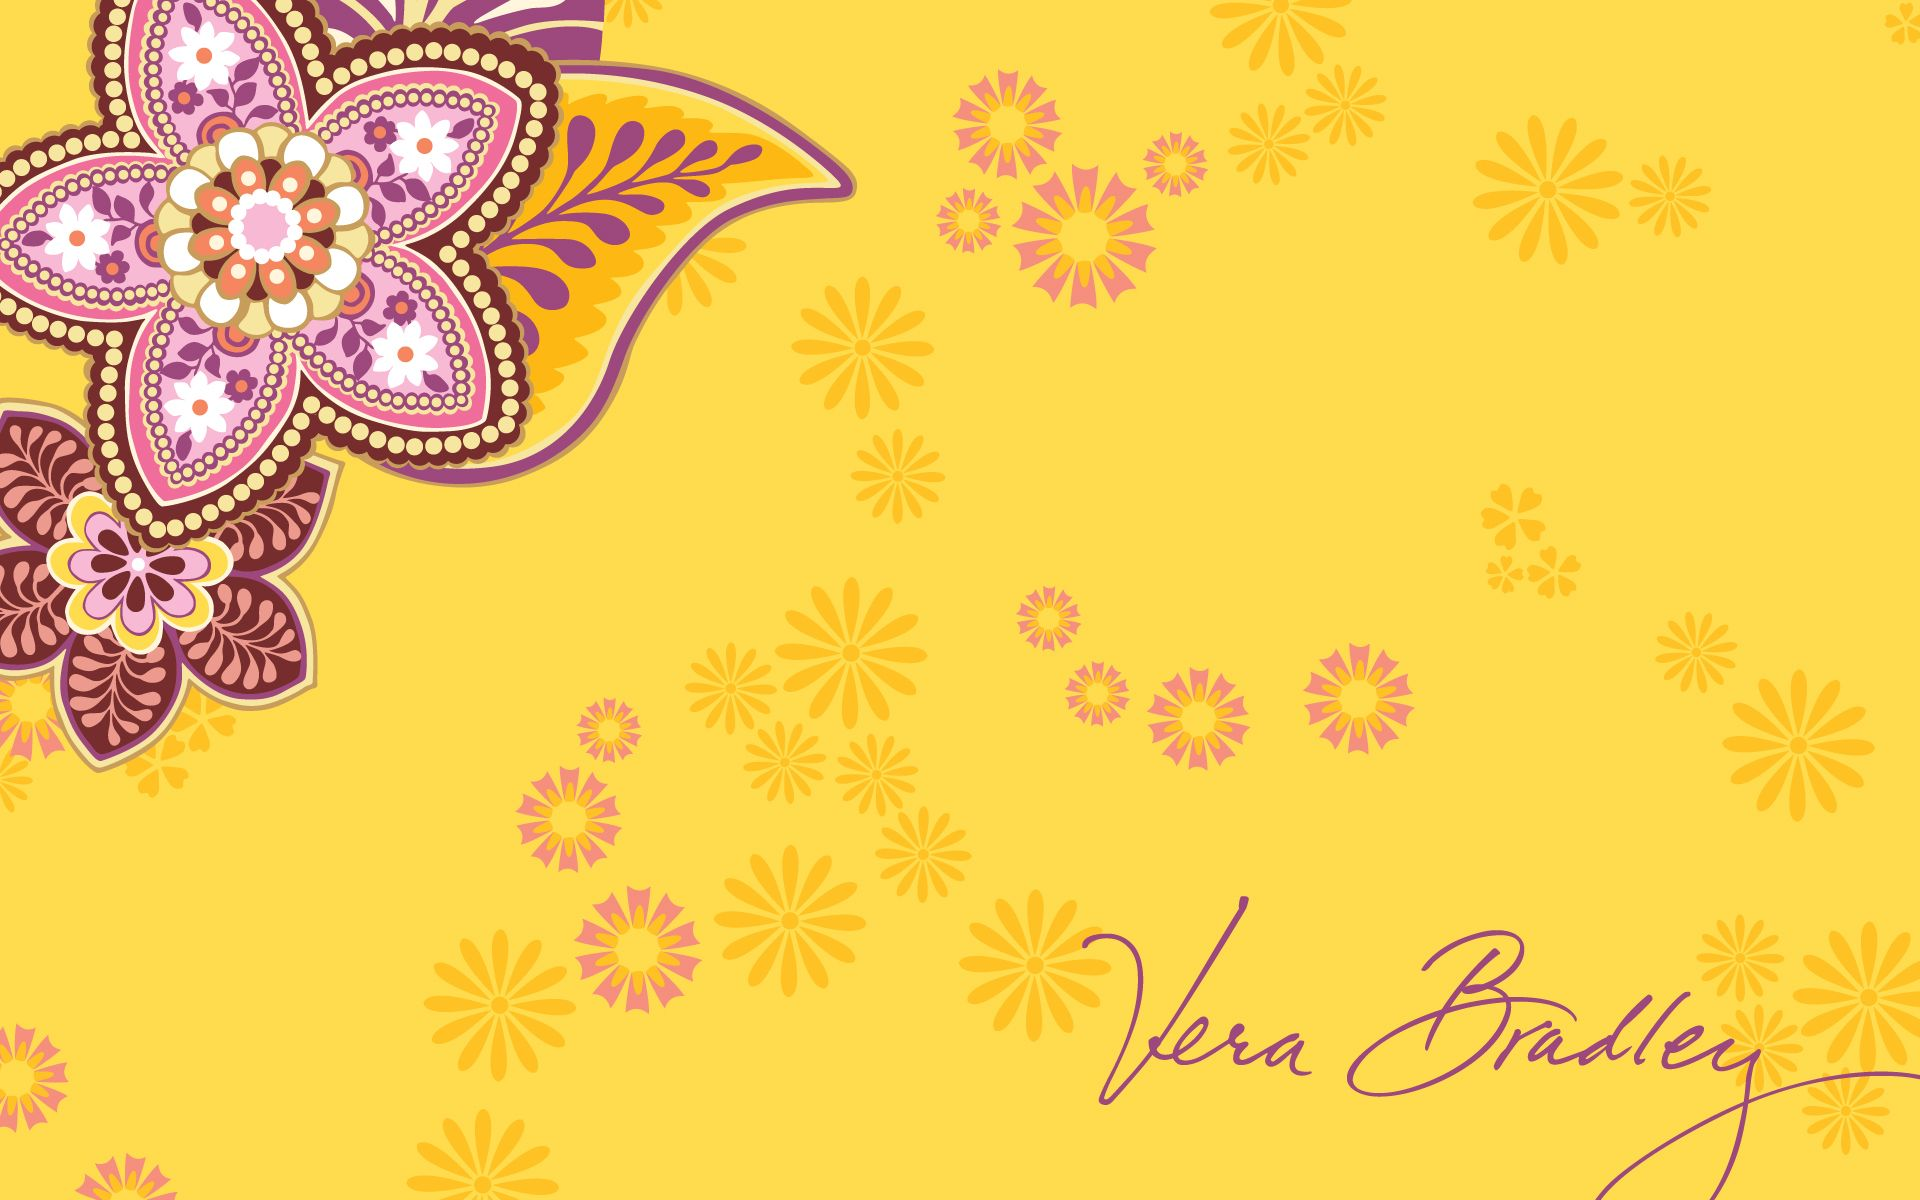 vb wallpapers vera bradley wallpaper 35126637 fanpop